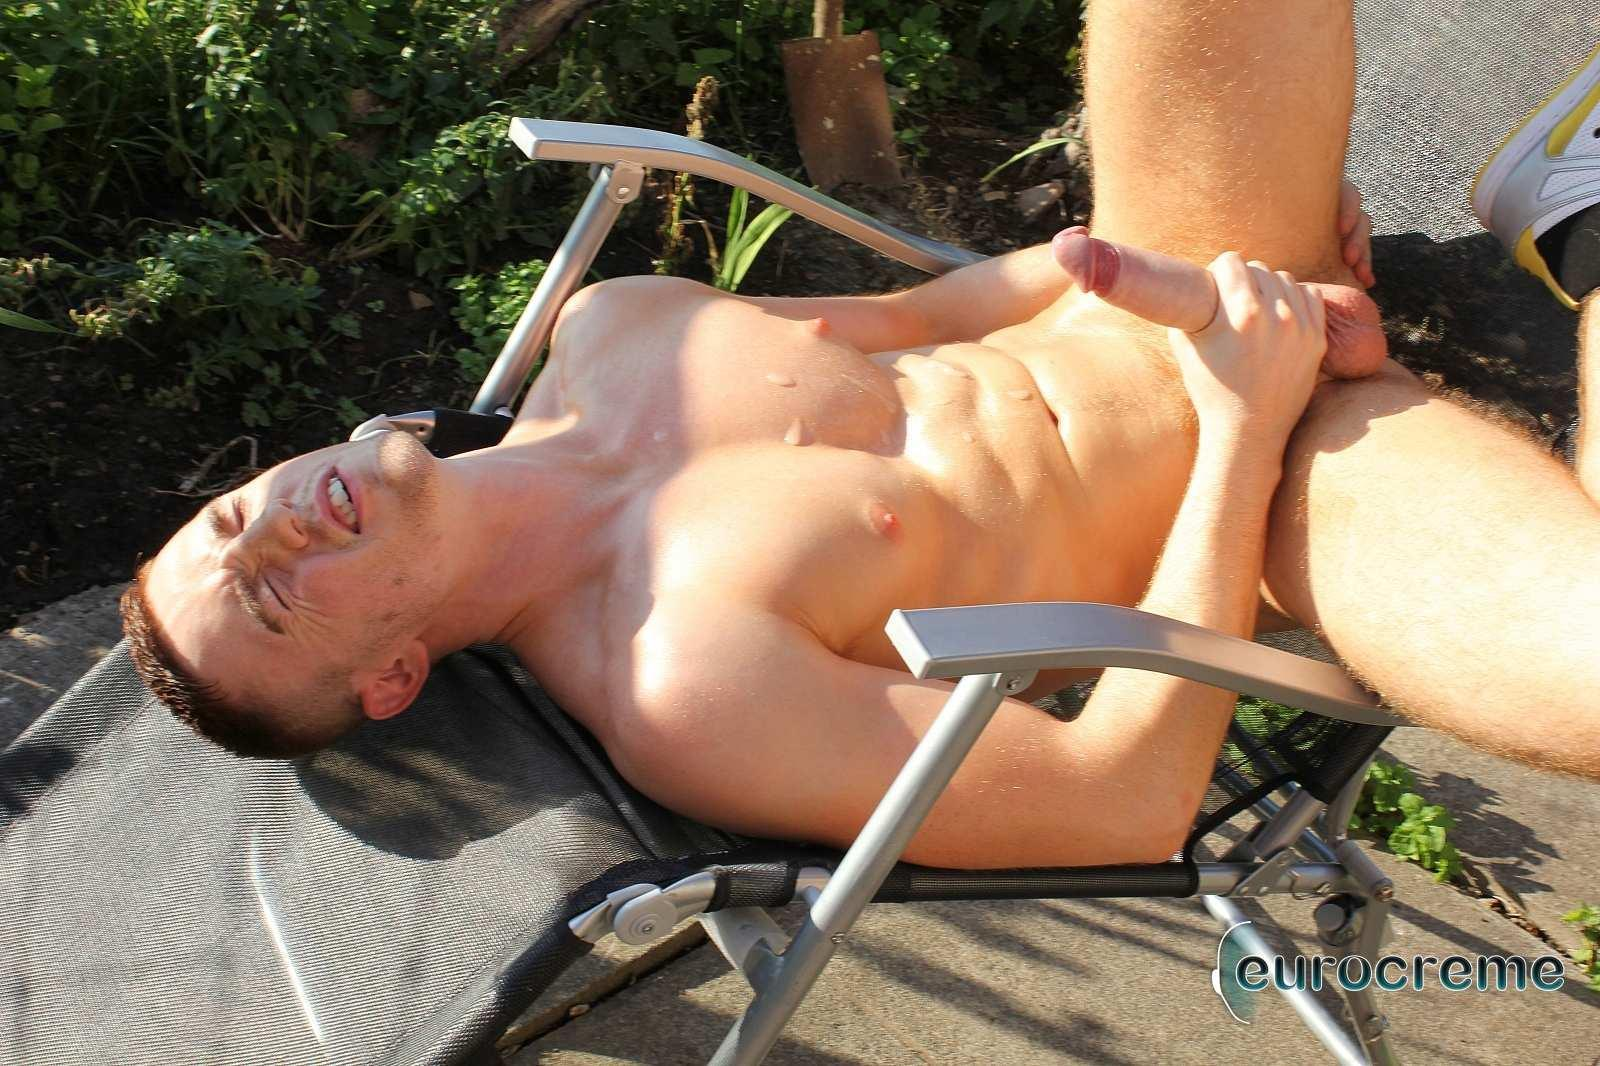 Eurocreme-JP-Dubois-Biggest-Uncut-Cock-Ever-Twink-Jerking-Off-Amateur-Gay-Porn-14 JP Dubois Jerking Off His Massive Uncut Cock In The Countryside